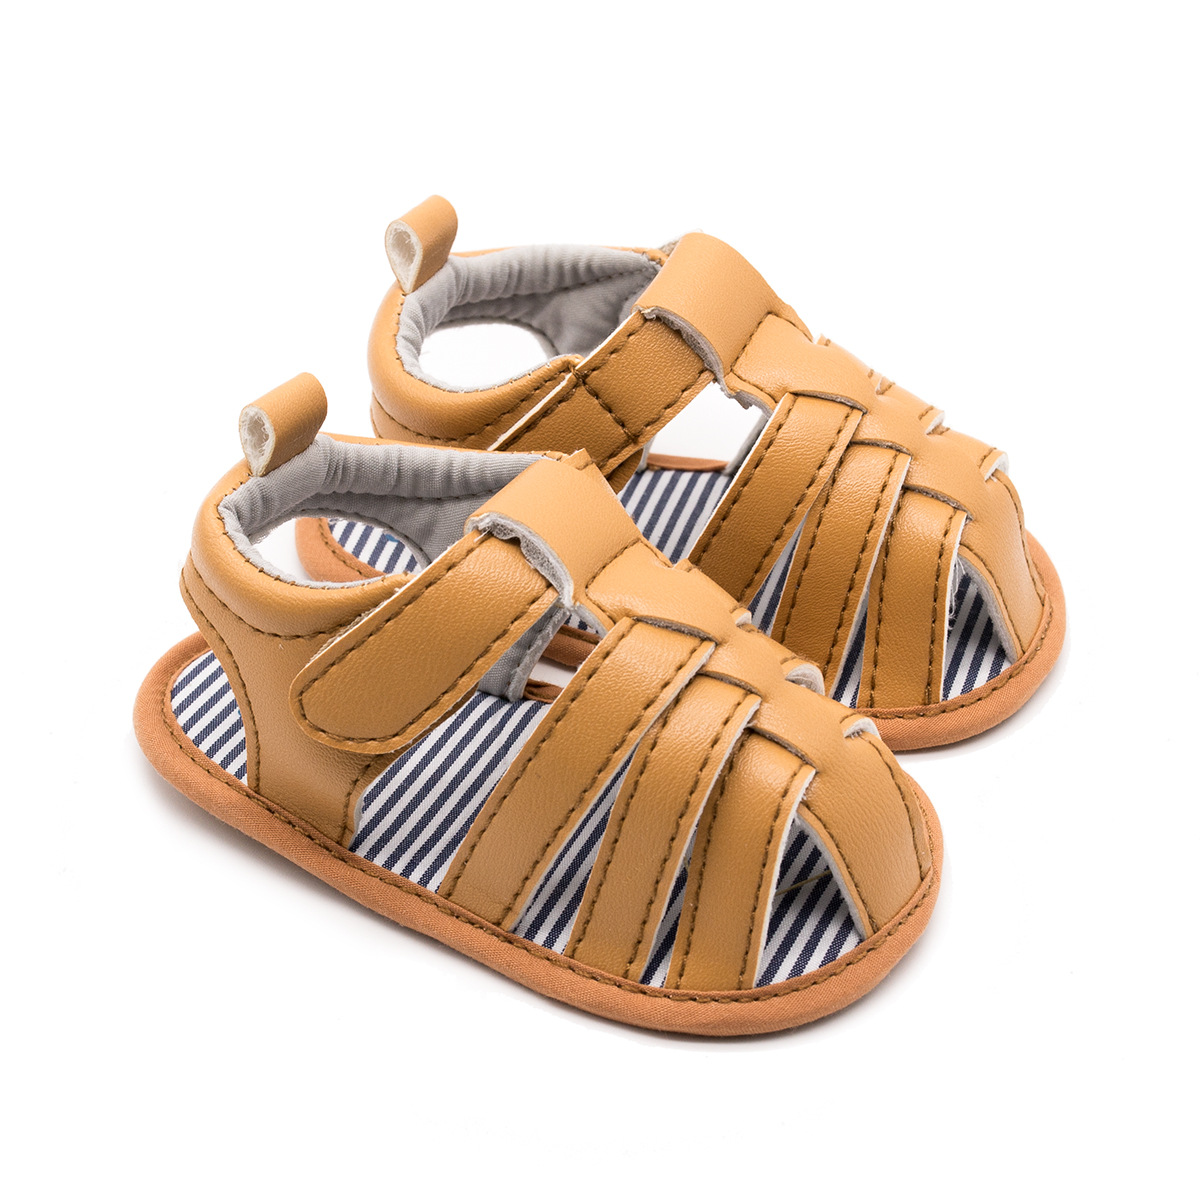 2018 Hot Fashion Baby Sandals Cute Color Infant Boy Summer Shoes Sale 0-12M